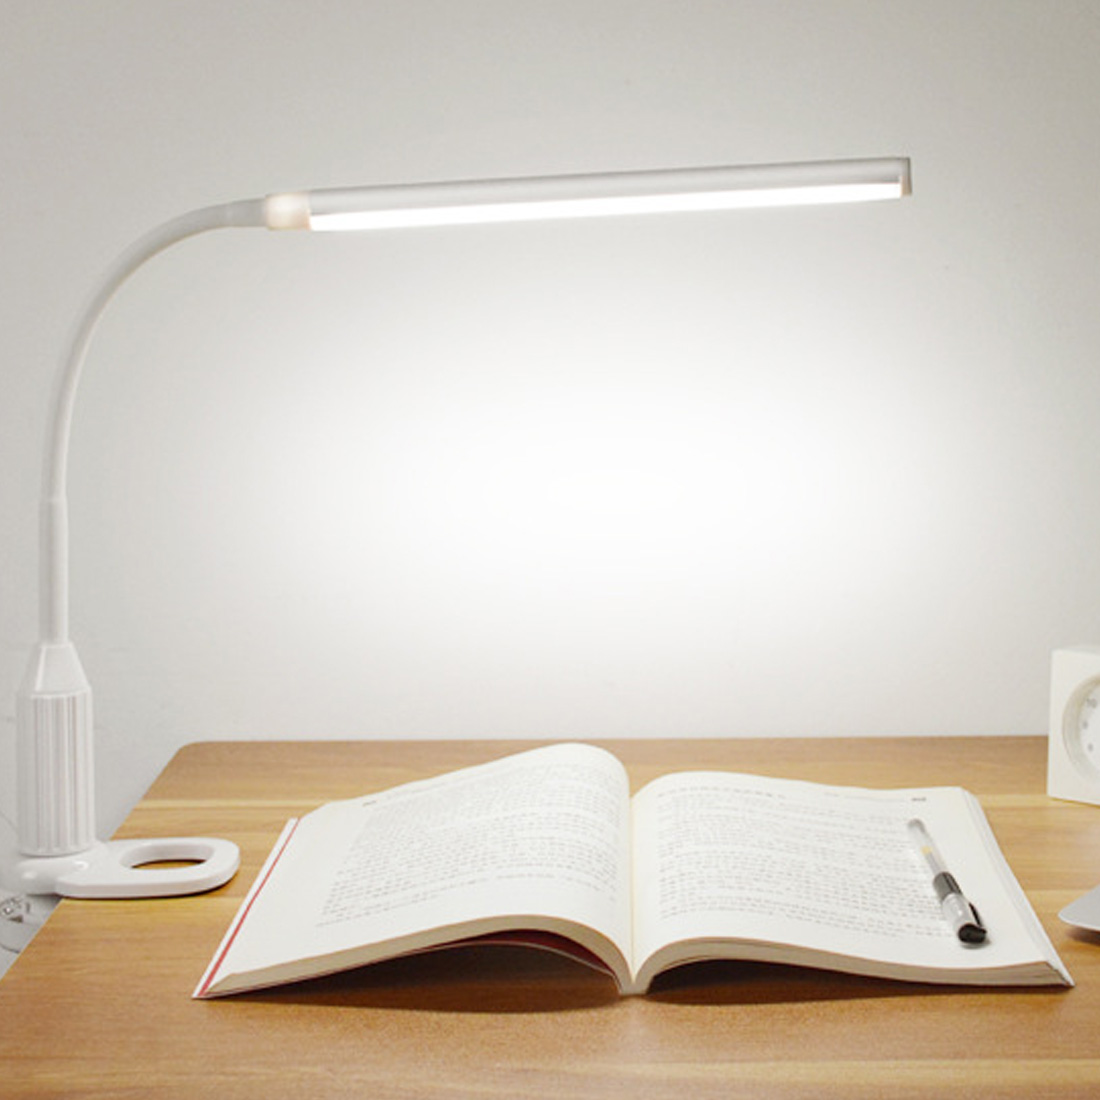 Eye Protect LED Table Lamp Study Desk Lamp Clamp Clip Light Office Stepless Dimmable Bendable USB Touch Switch Sensor ControlEye Protect LED Table Lamp Study Desk Lamp Clamp Clip Light Office Stepless Dimmable Bendable USB Touch Switch Sensor Control